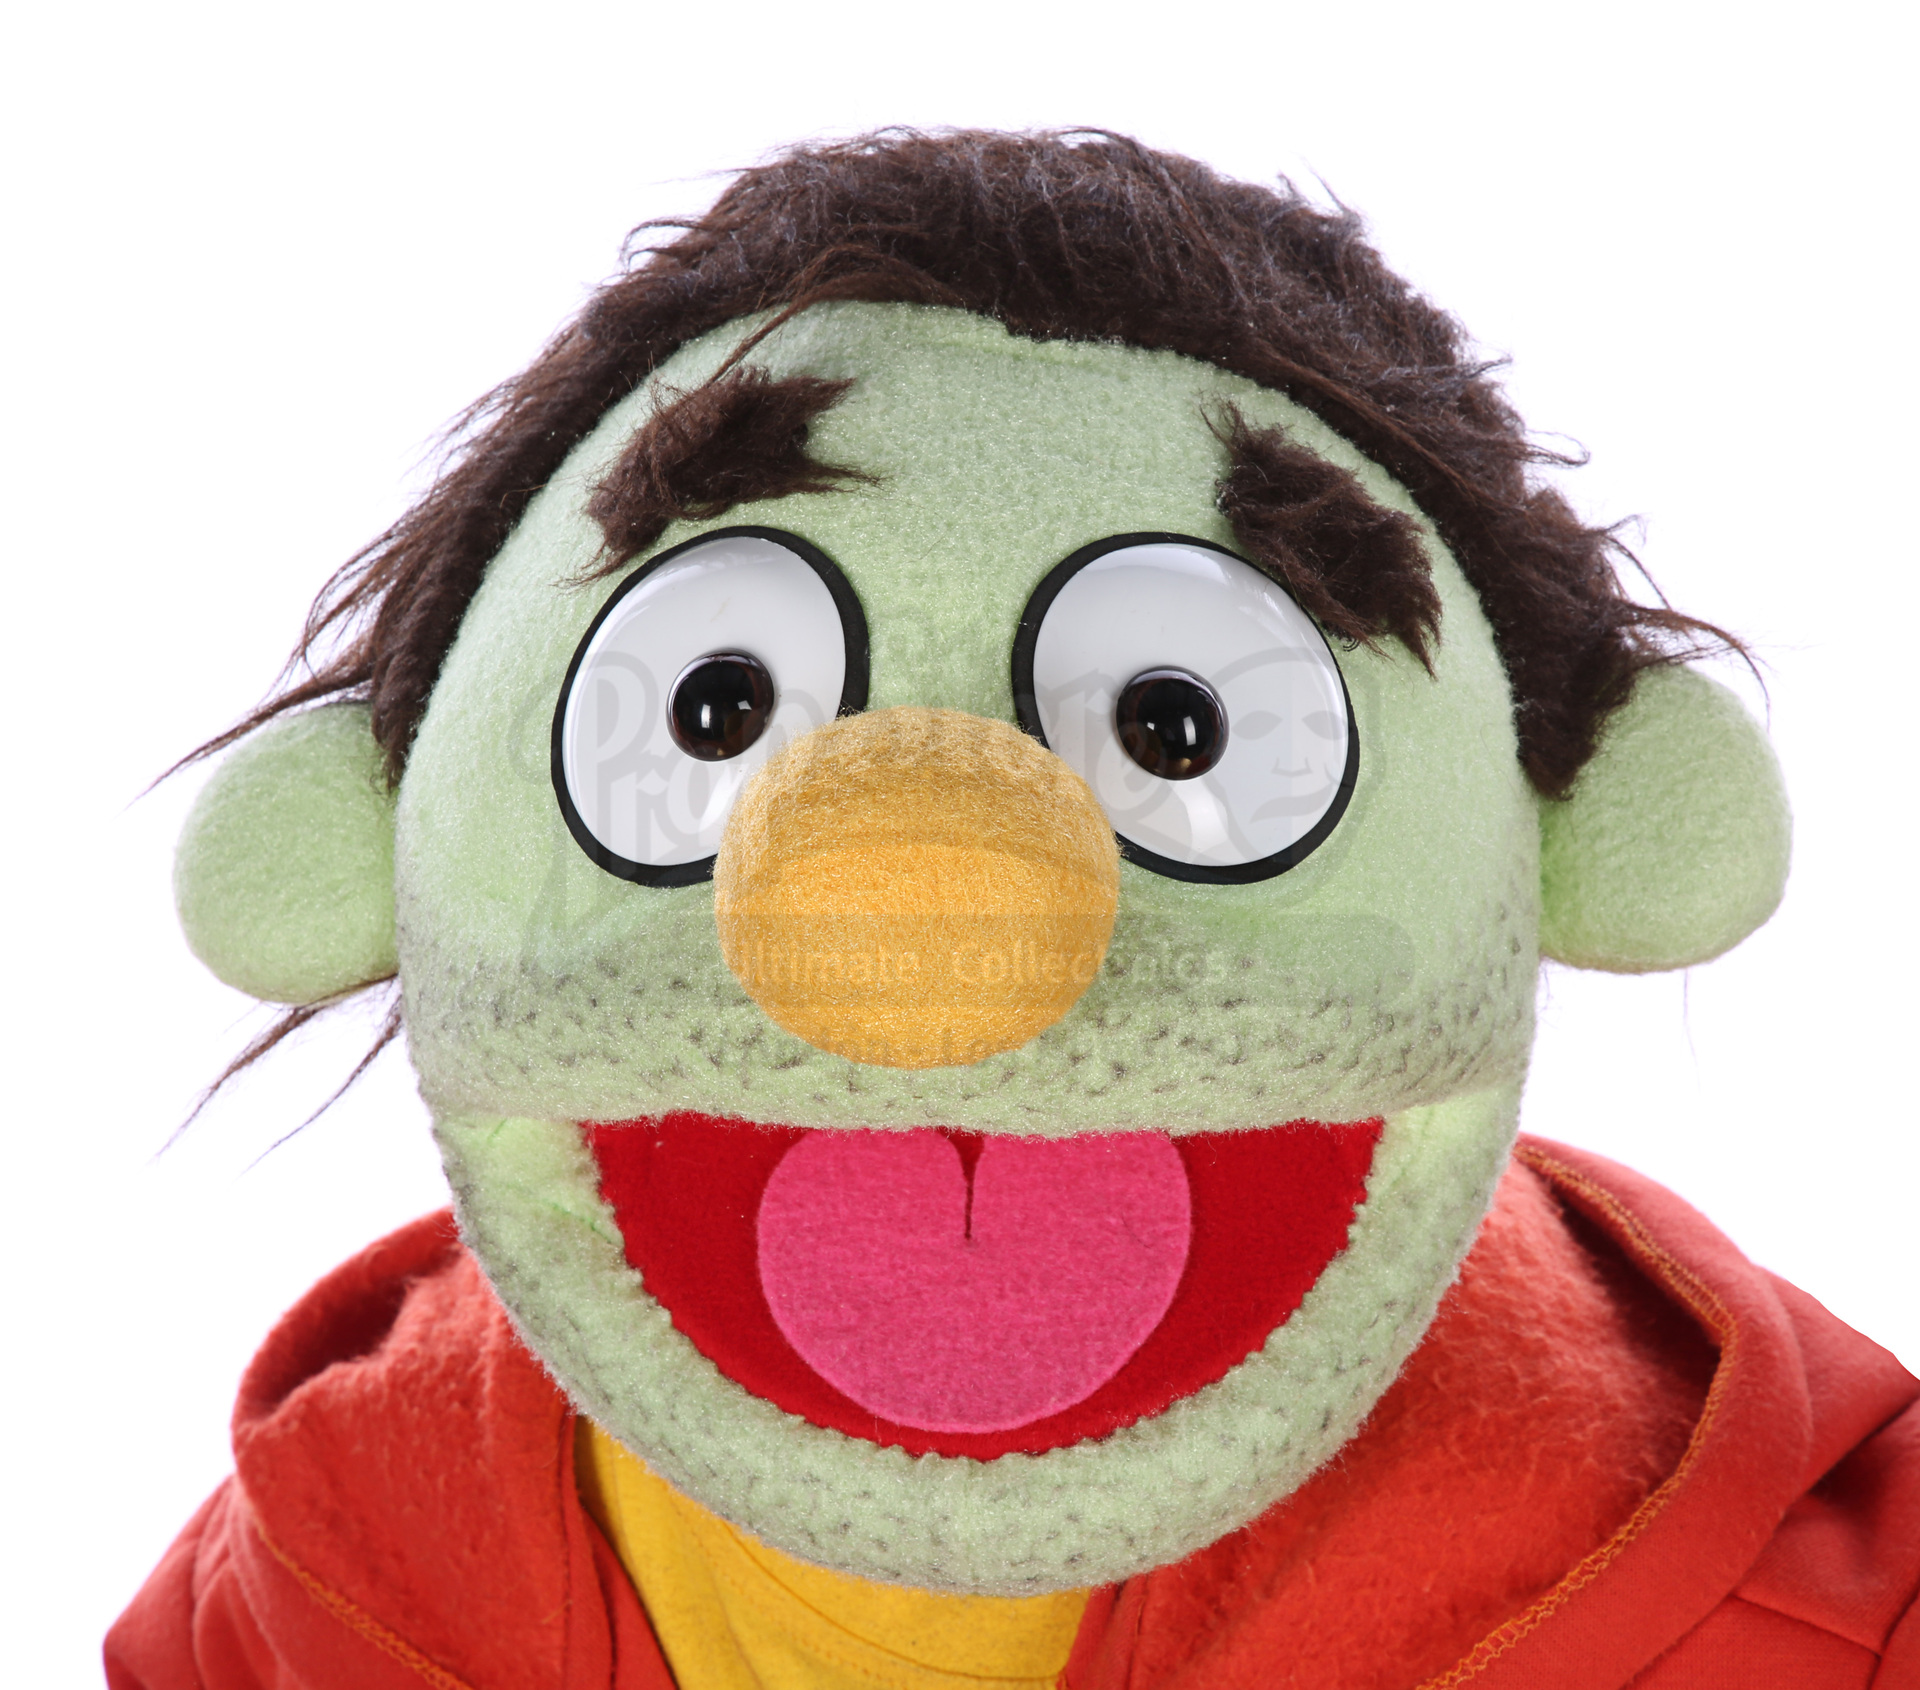 AVENUE Q (STAGE SHOW) - Nicky and Rod Puppets - Image 8 of 12